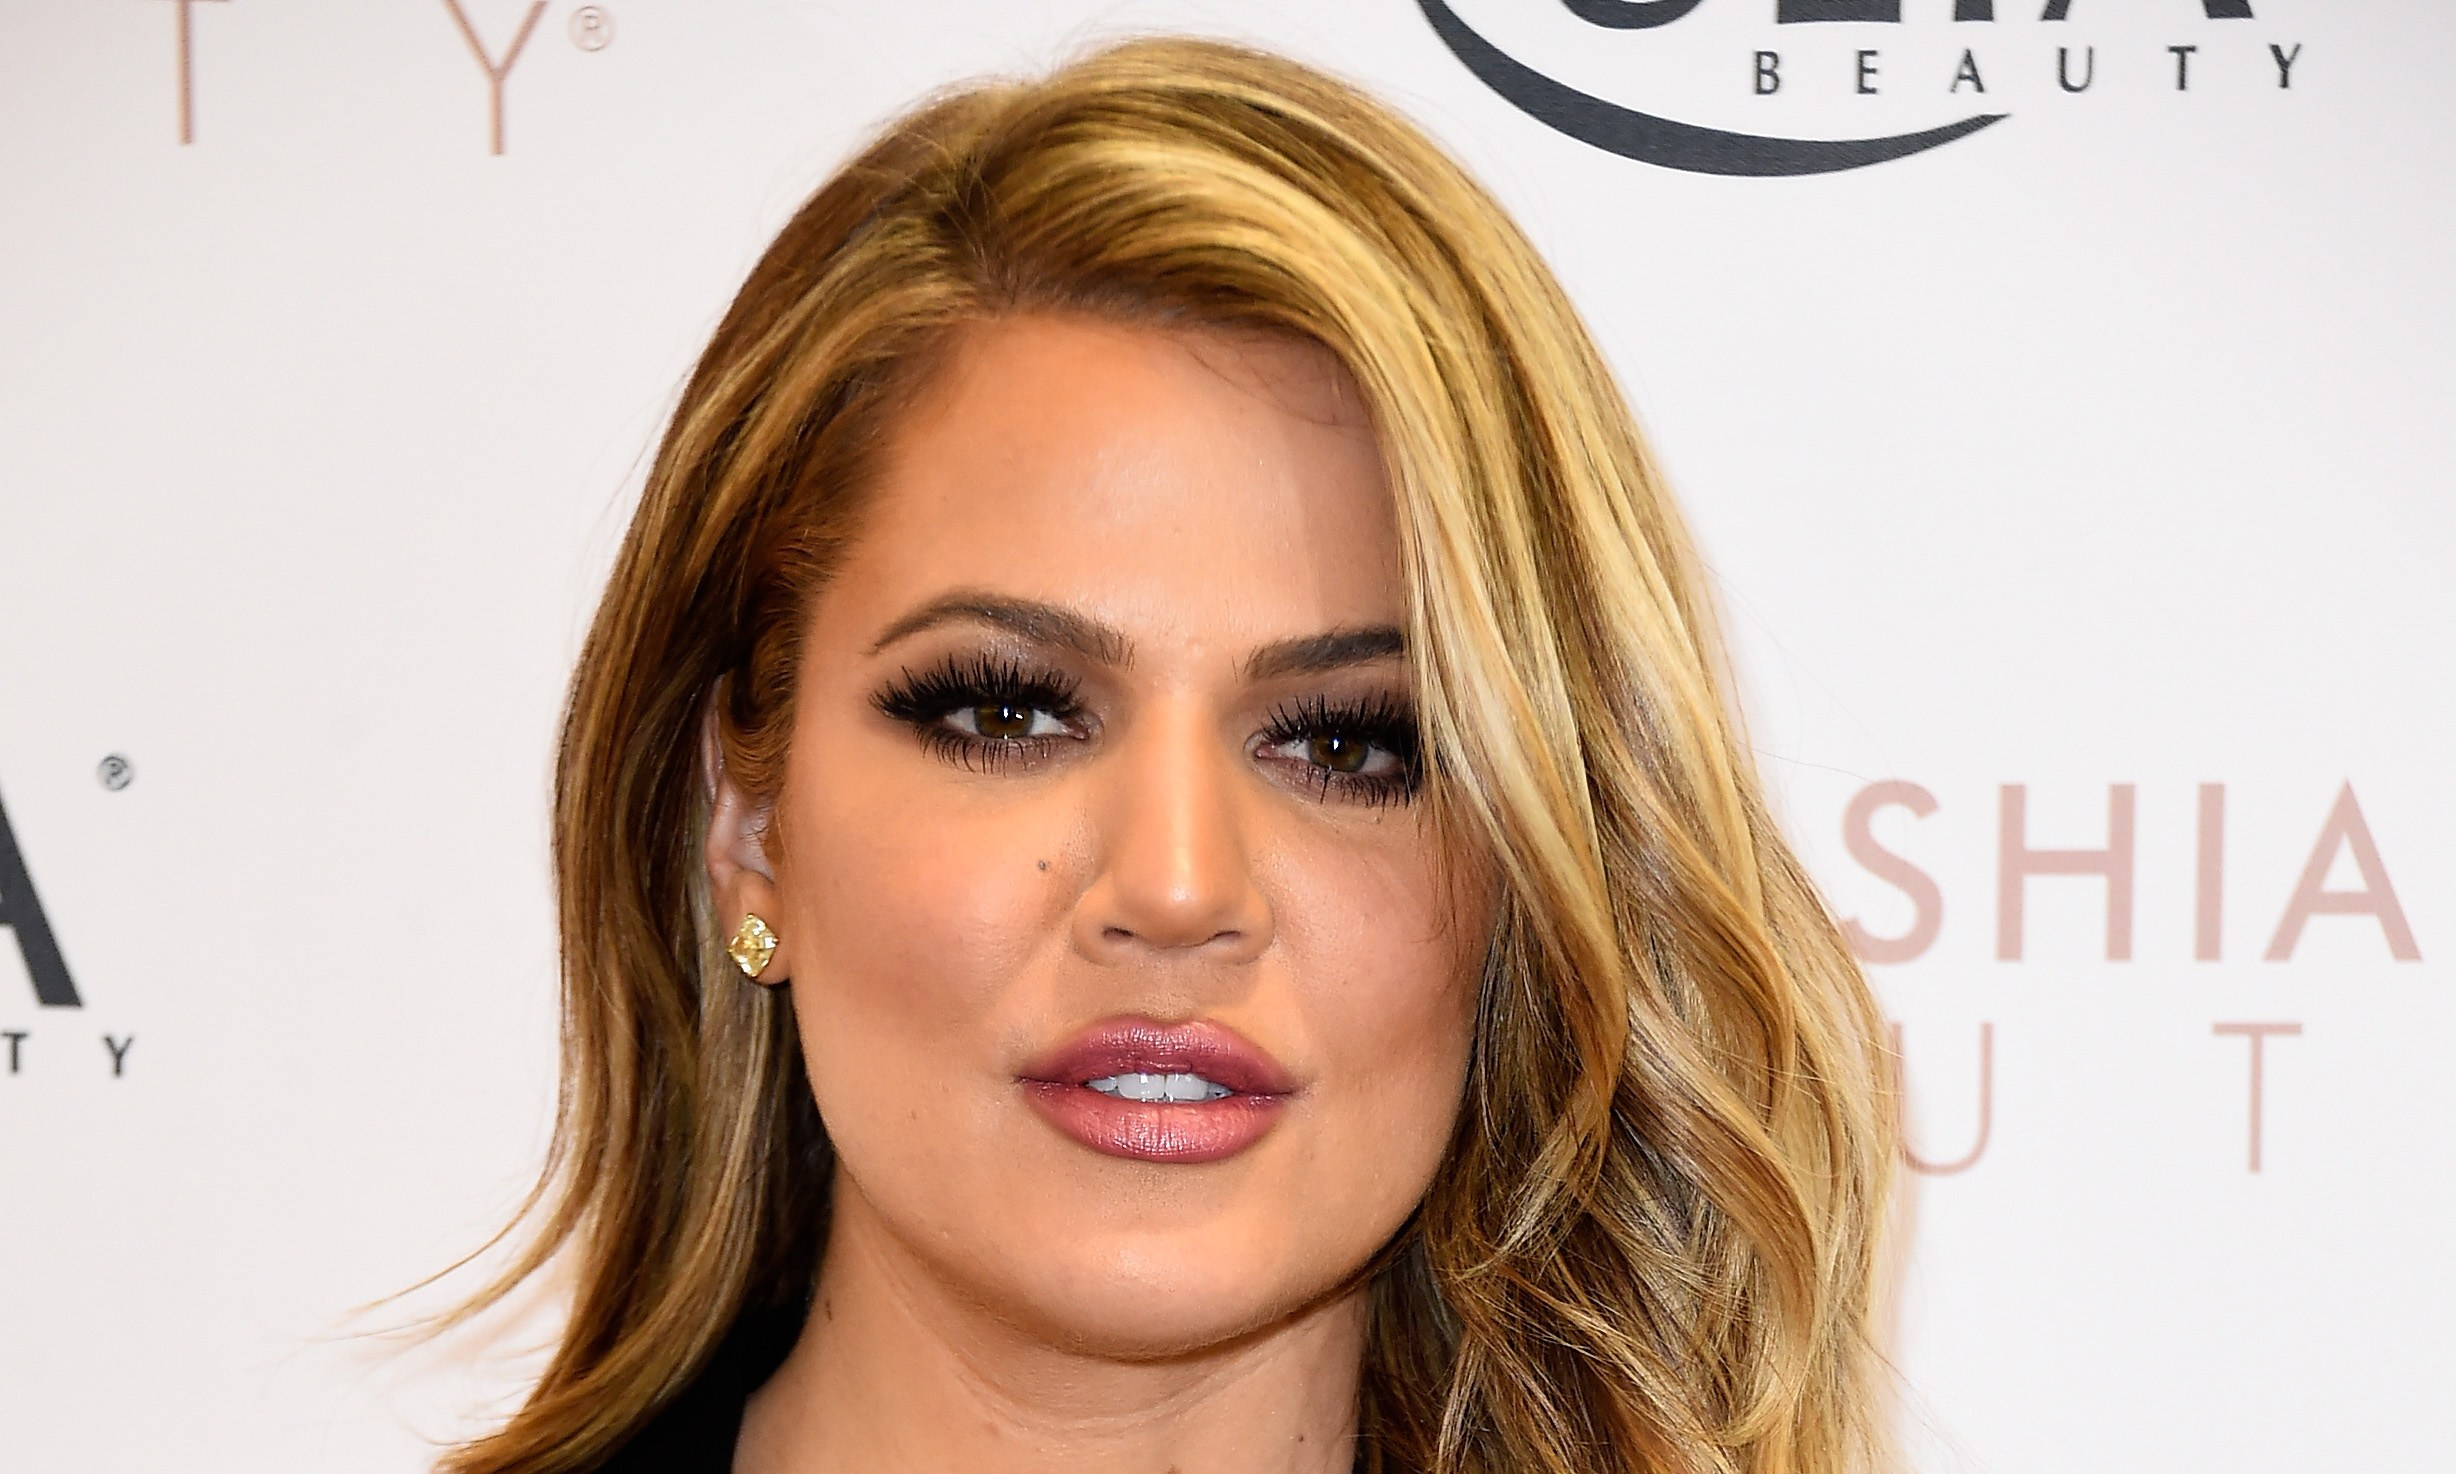 Khloe Kardashian Appears At ULTA Beauty's West Hills Store To Promote Kardashian Beauty Hair Care And Styling Line